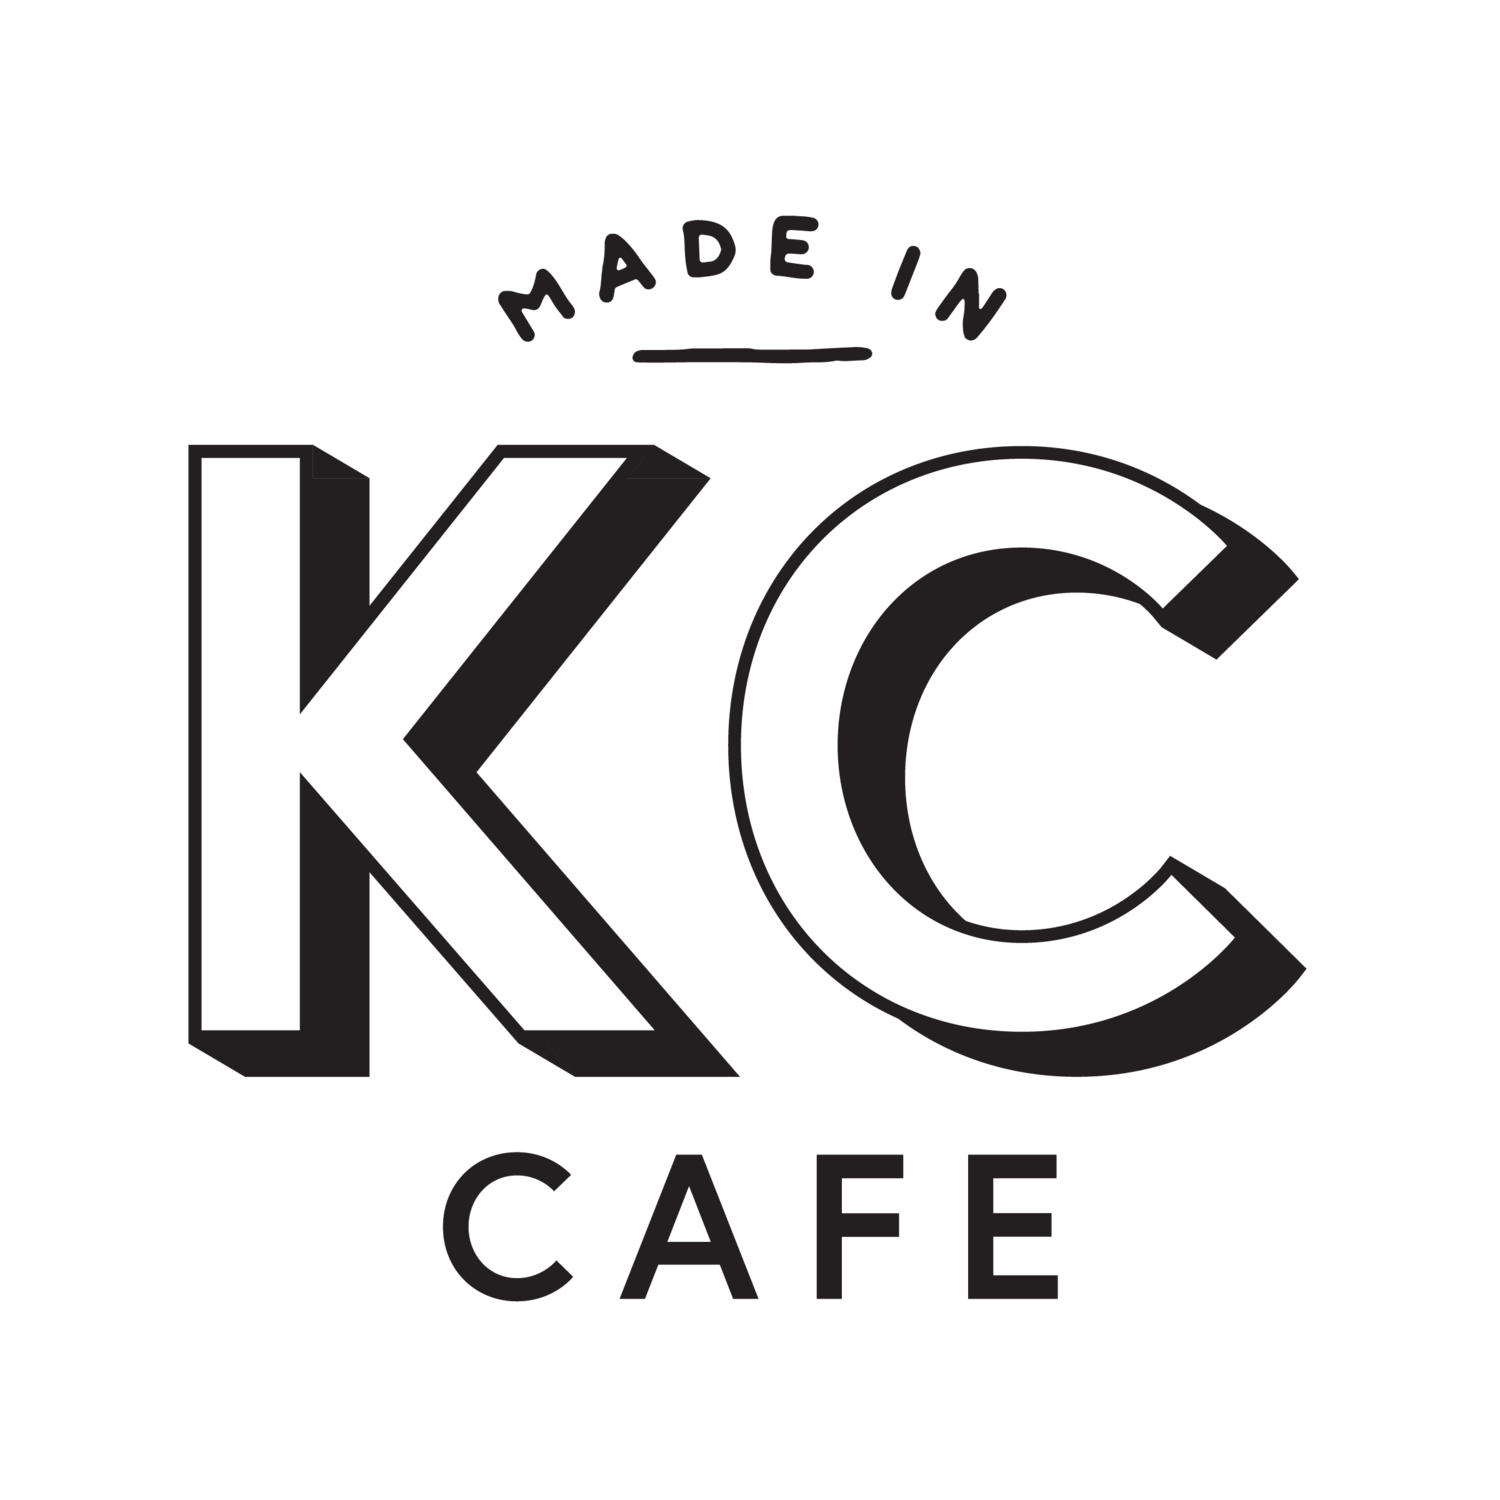 Made in KC Cafe